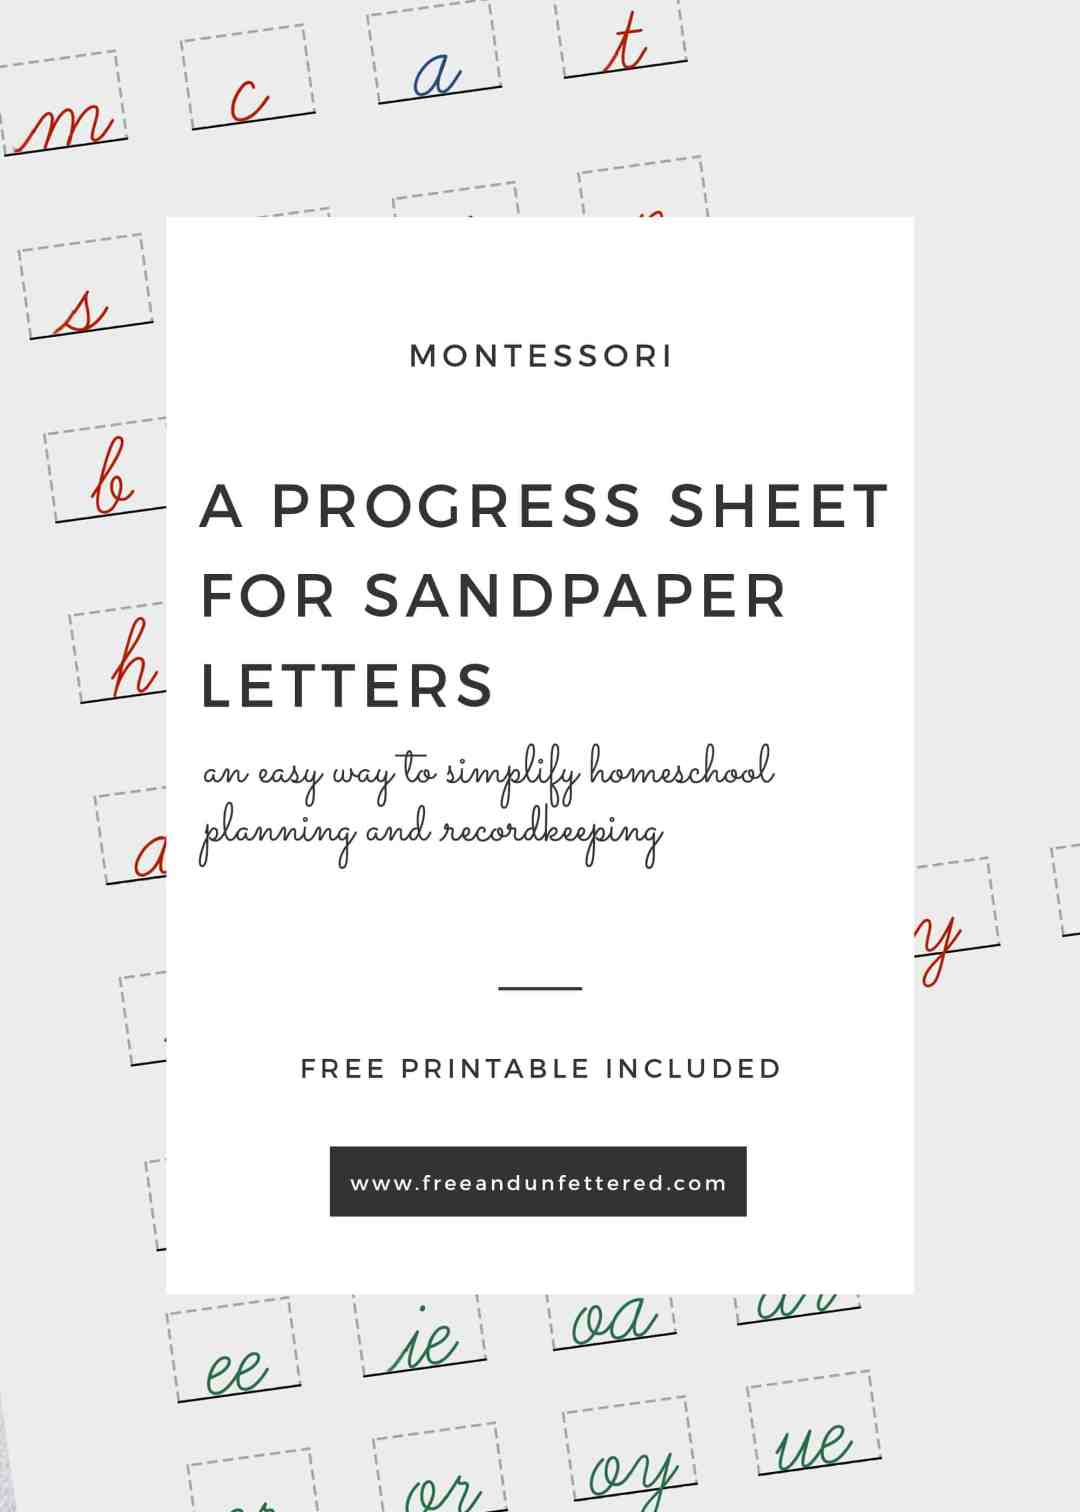 Free Printable: A Progress Sheet for Montessori's Sandpaper Letters. Perfect for Montessori-inspired homeschool organization and recordkeeping.